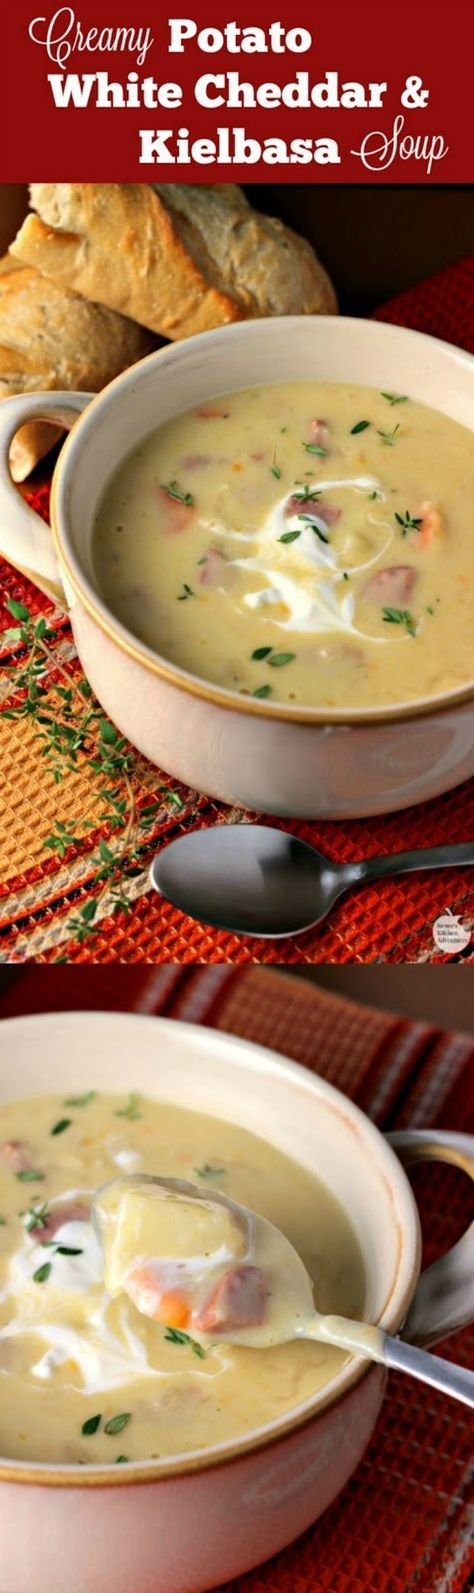 Creamy Potato, White Cheddar, and Kielbasa Soup | by Renee's Kitchen Adventures - msg 4 21+ Easy, hearty soup recipe perfect for the cooler weather! A taste of old world Oktoberfest #OktoberfestontheFarm ad